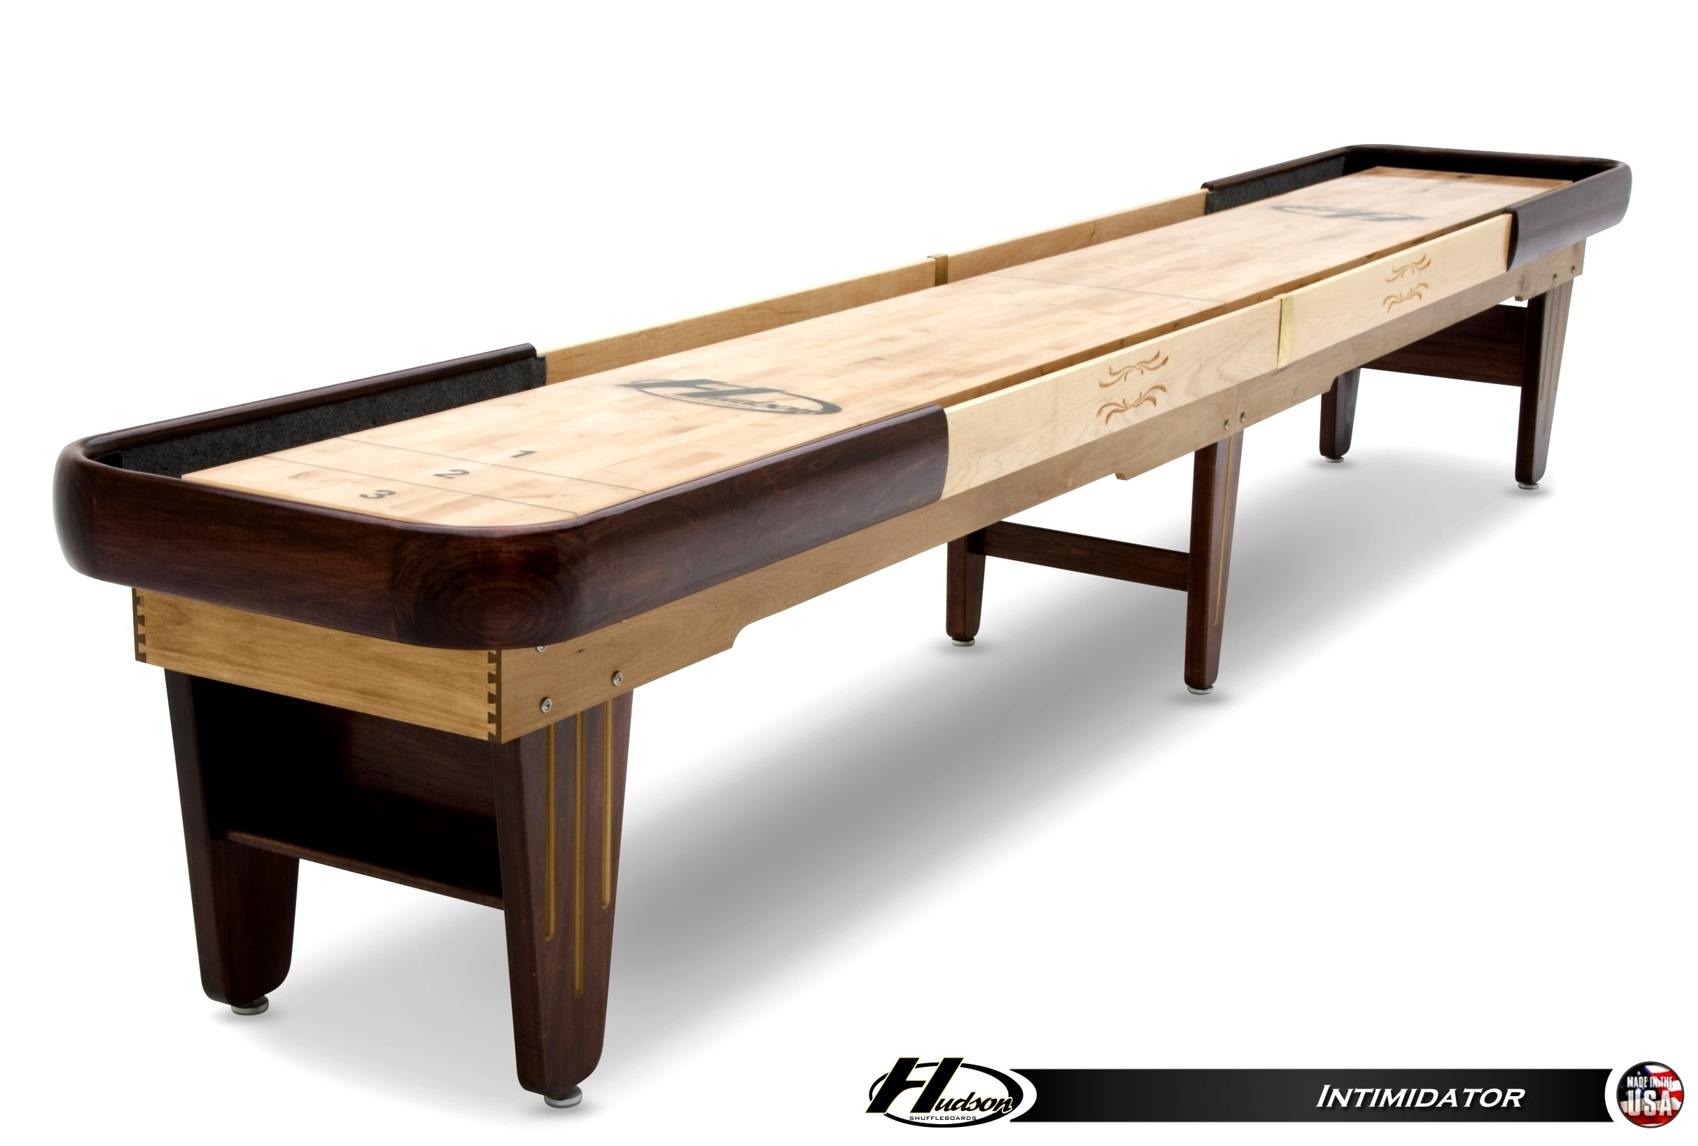 18 Foot Intimidator Shuffleboard Table